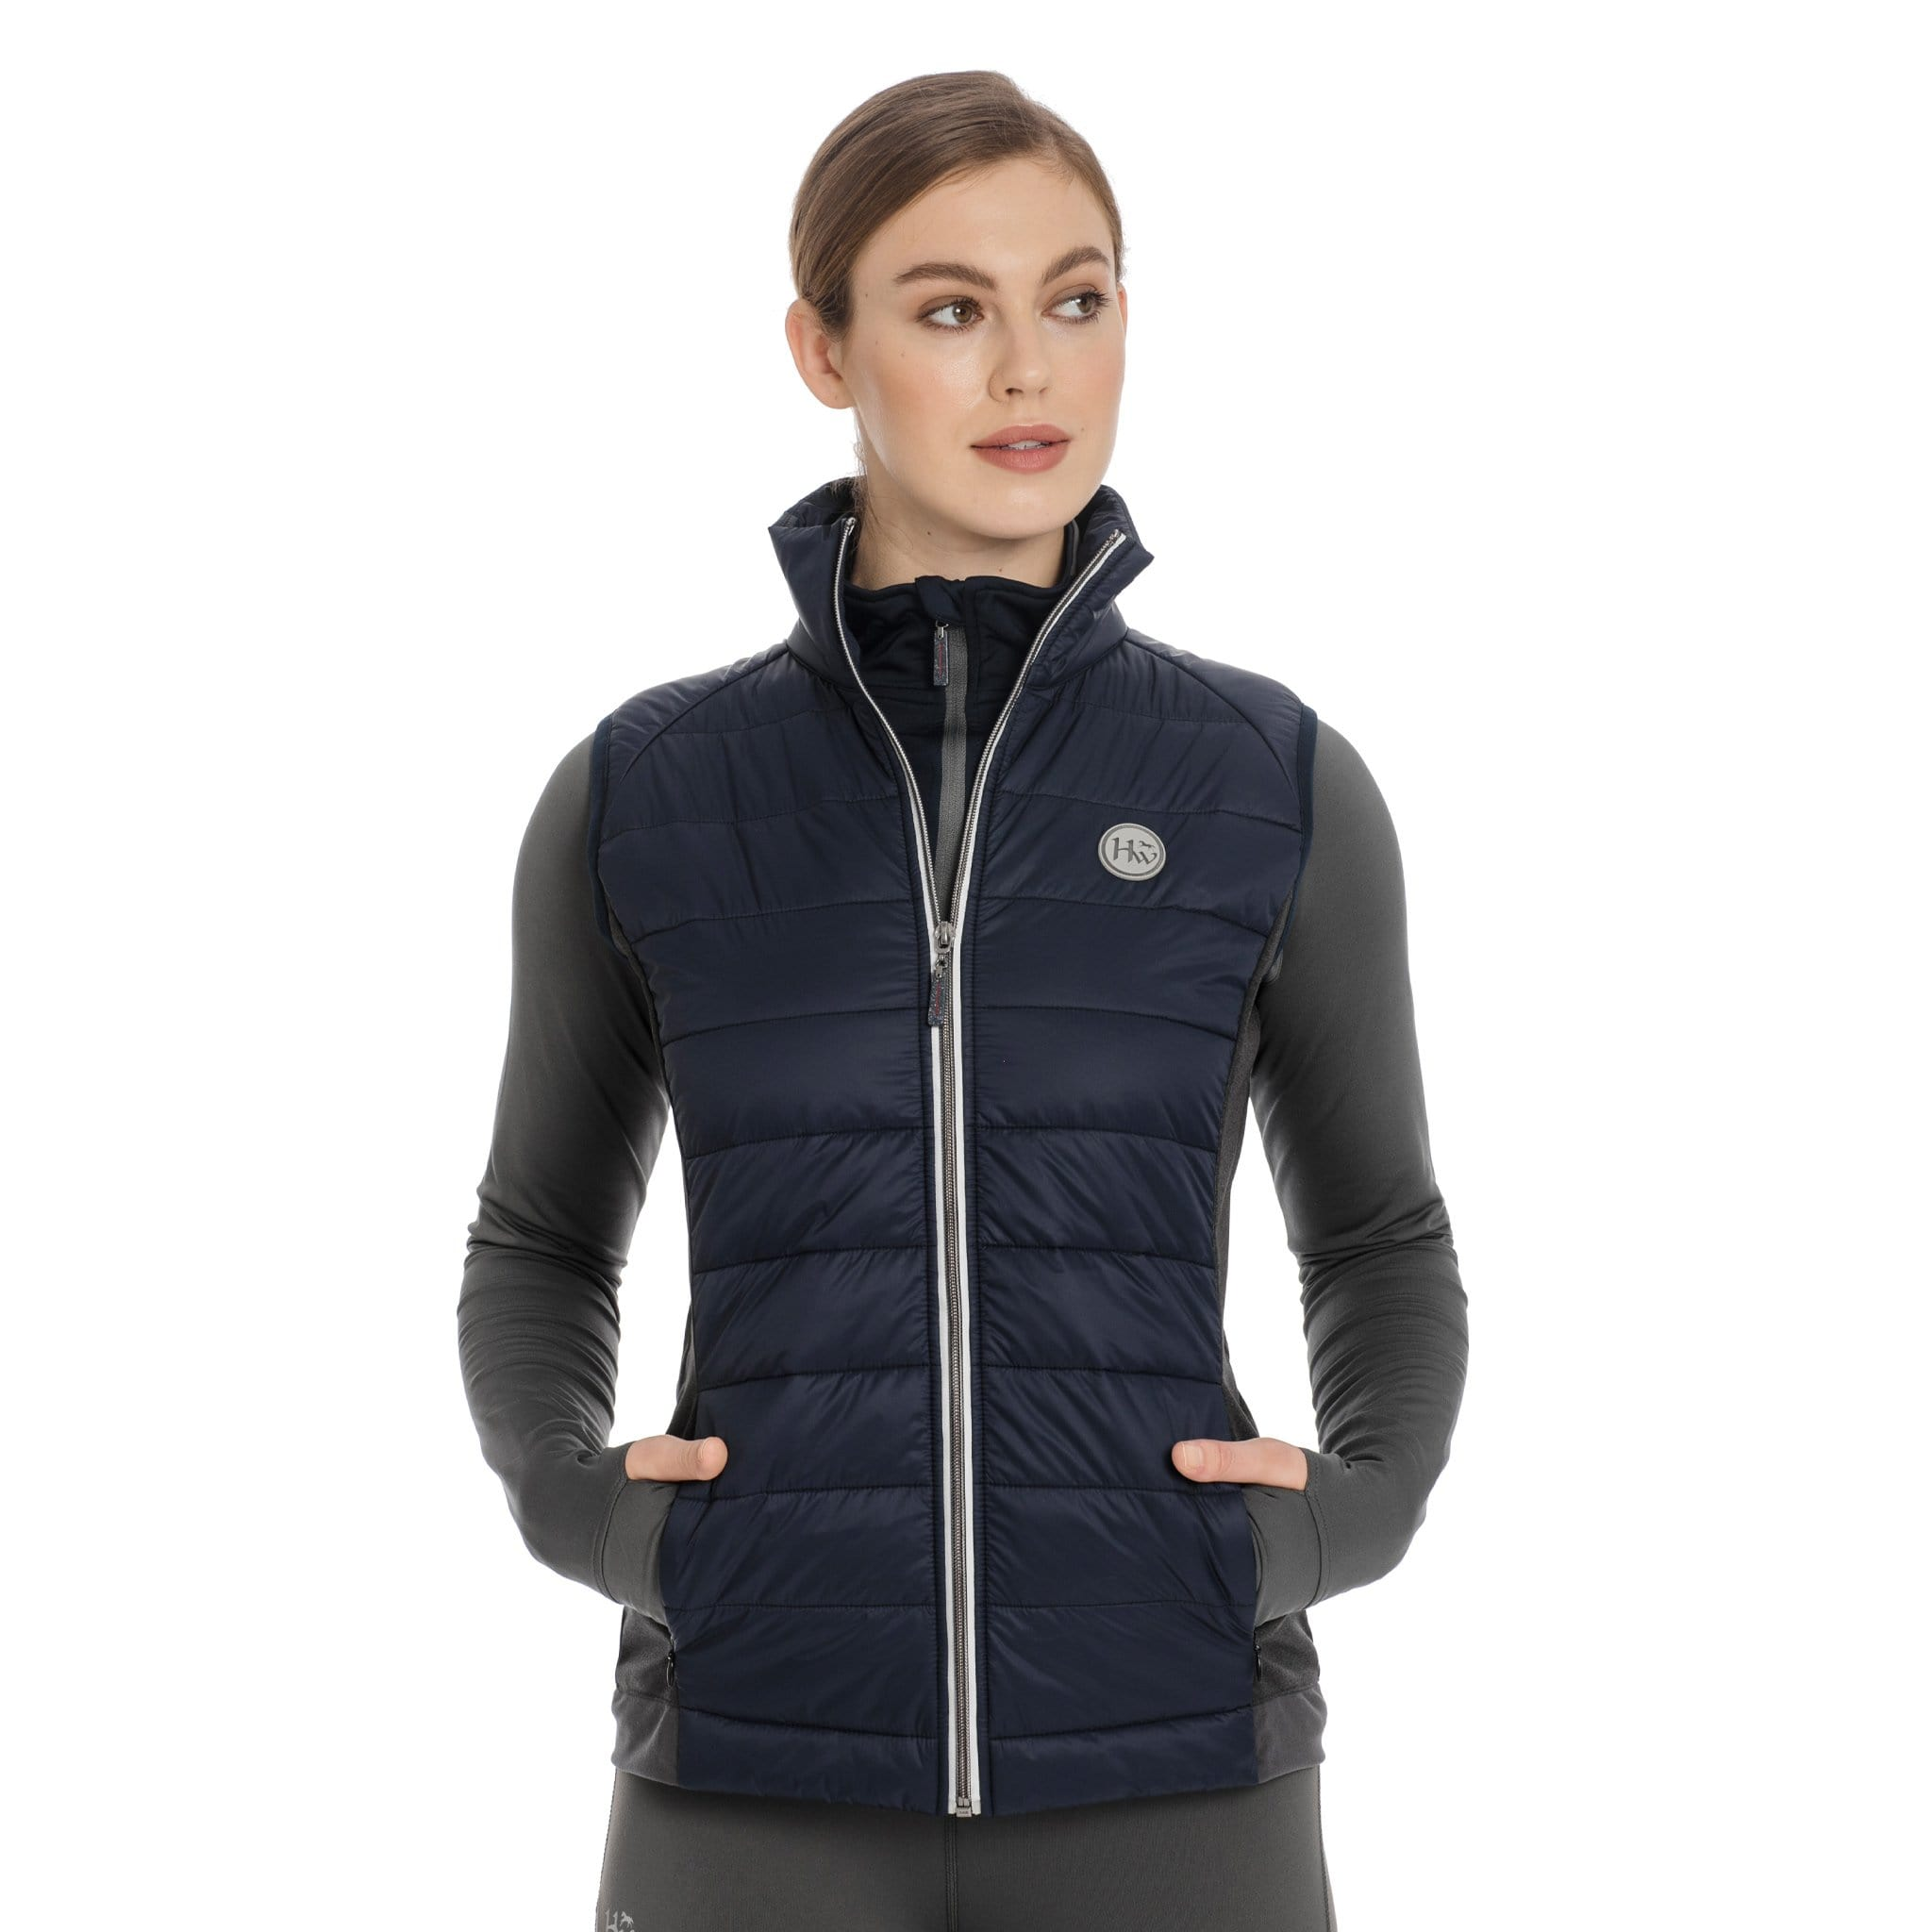 Horseware Winter Hybrid Gilet CBHDTB Navy On Model Front View